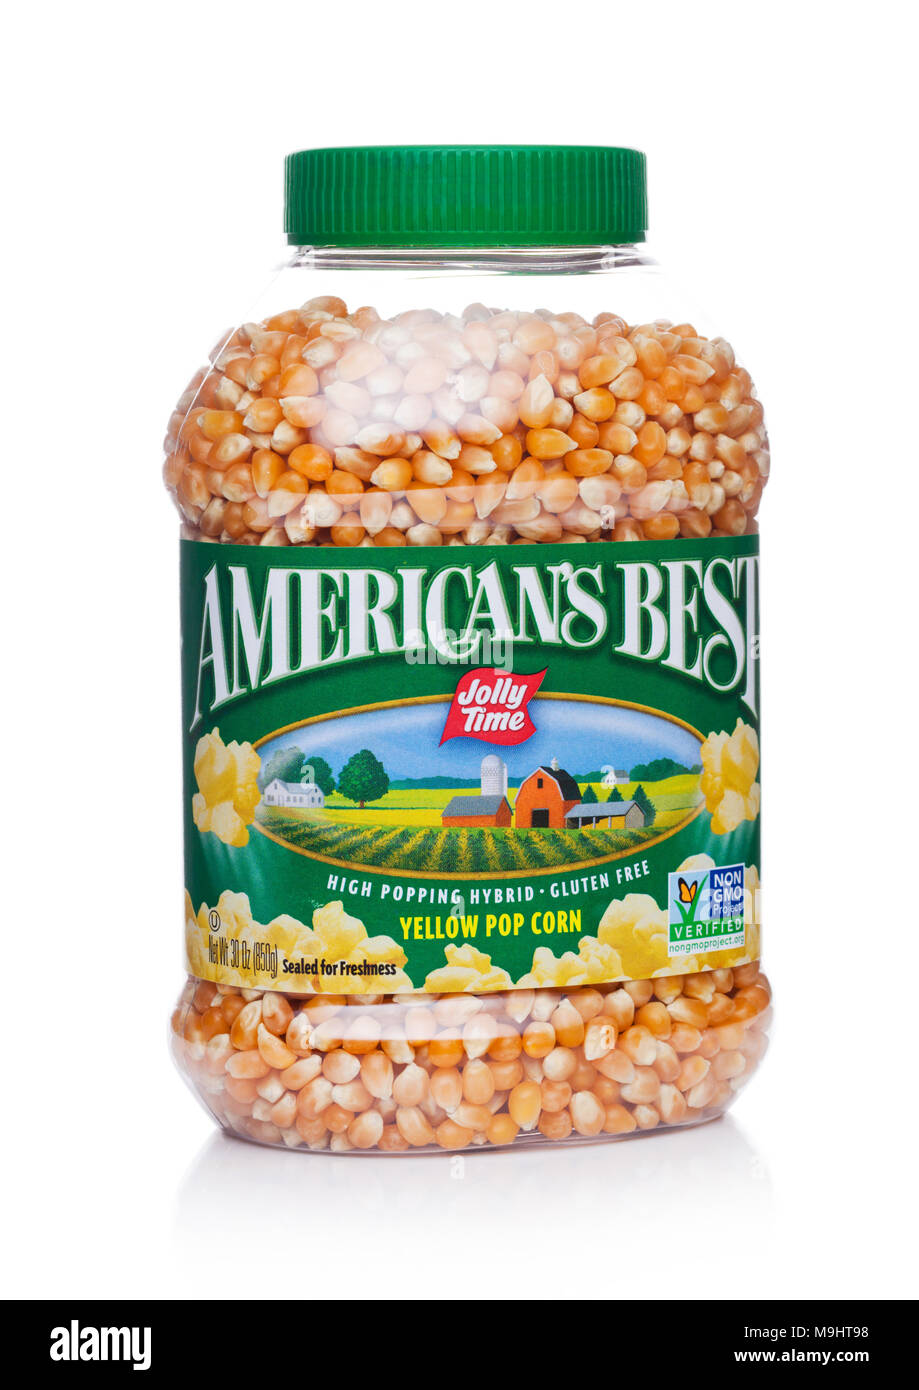 LONDON, UK -MARCH 22, 2018: Plastic jar of Jolly Time America's Best yellow popcorn on white background. - Stock Image